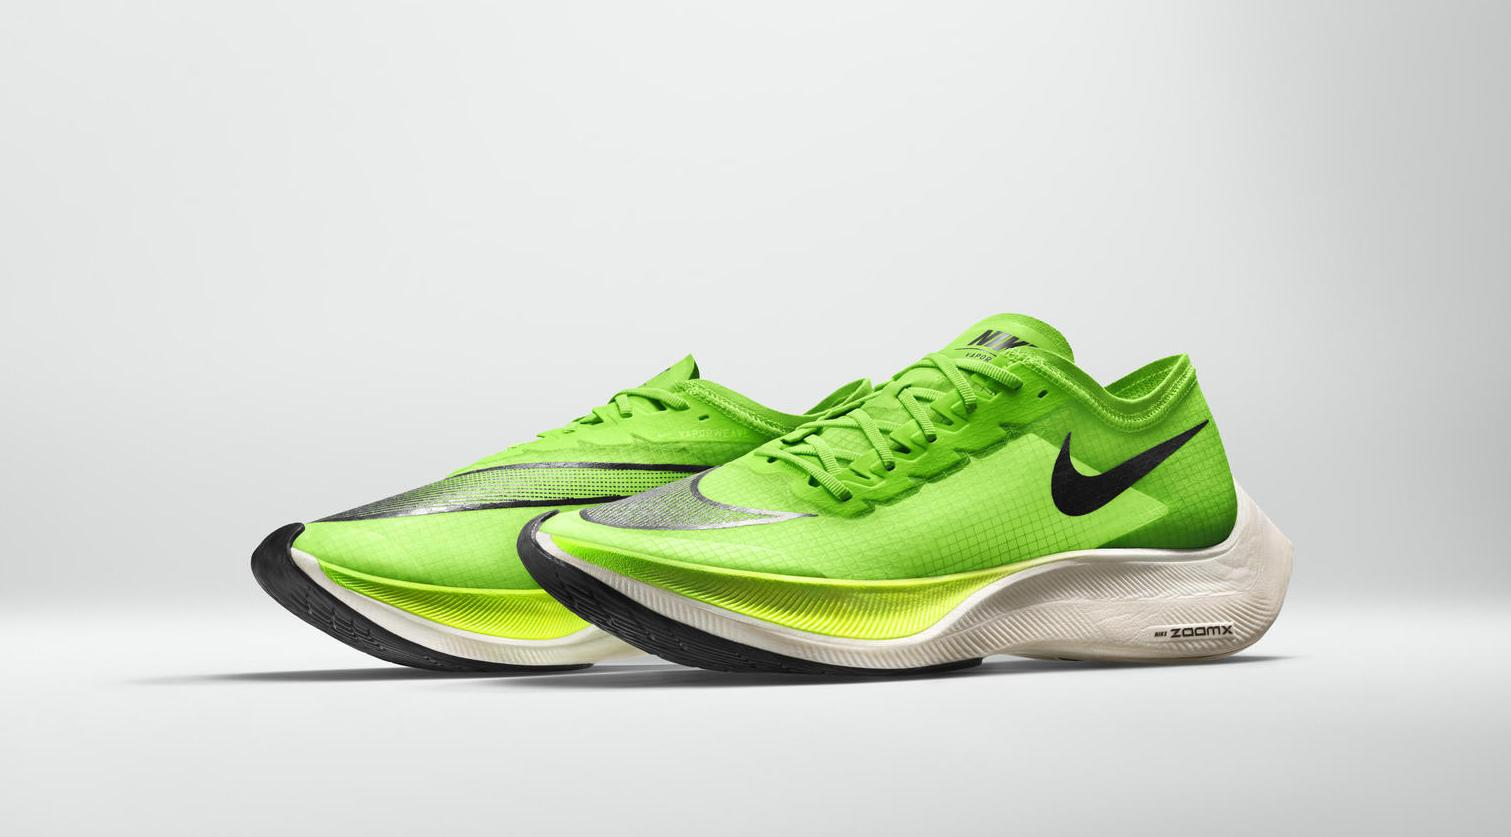 f70a827e4b52b Nike NEXT%  Marathon running shoe so good it became controversial has been  improved